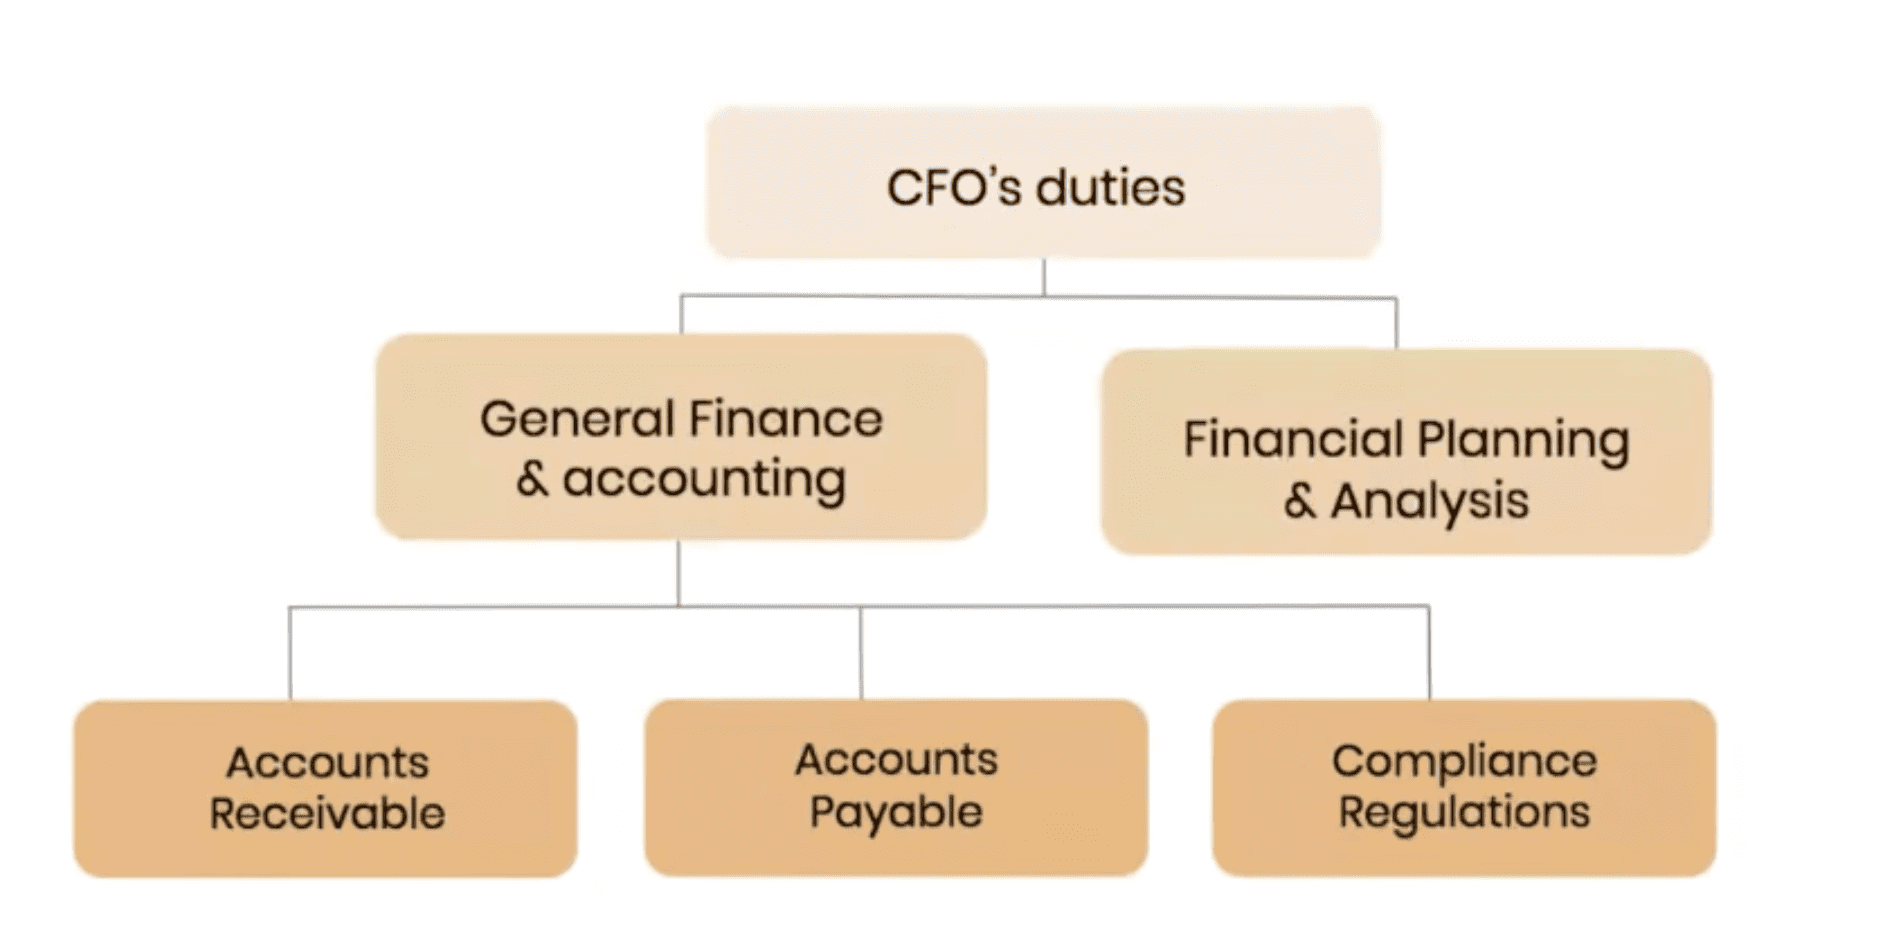 Structure of finance operations